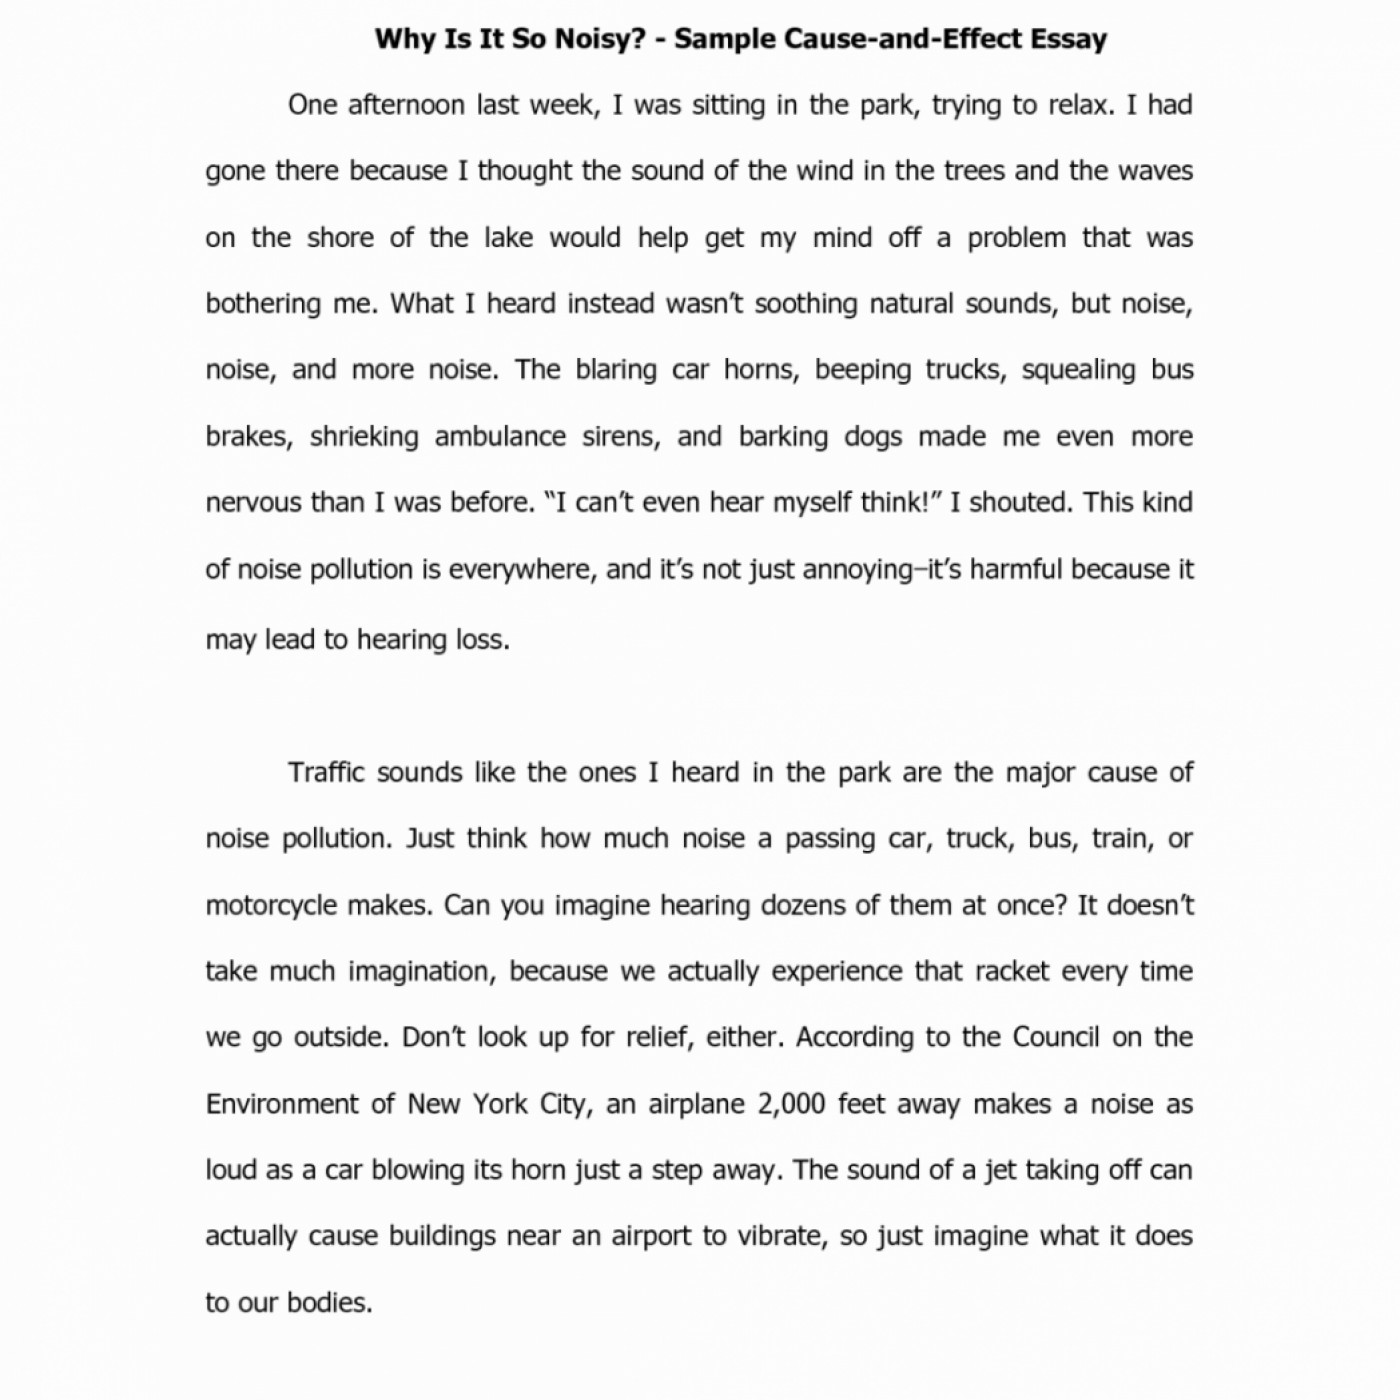 027 Cause And Effect Essays Format Best Of For Or Good Cover Bystander Domino Analysis Ielts Free 6th Grade College Pdf Middle School 1048x1048 Amazing Essay Examples Divorce Sentences 1400